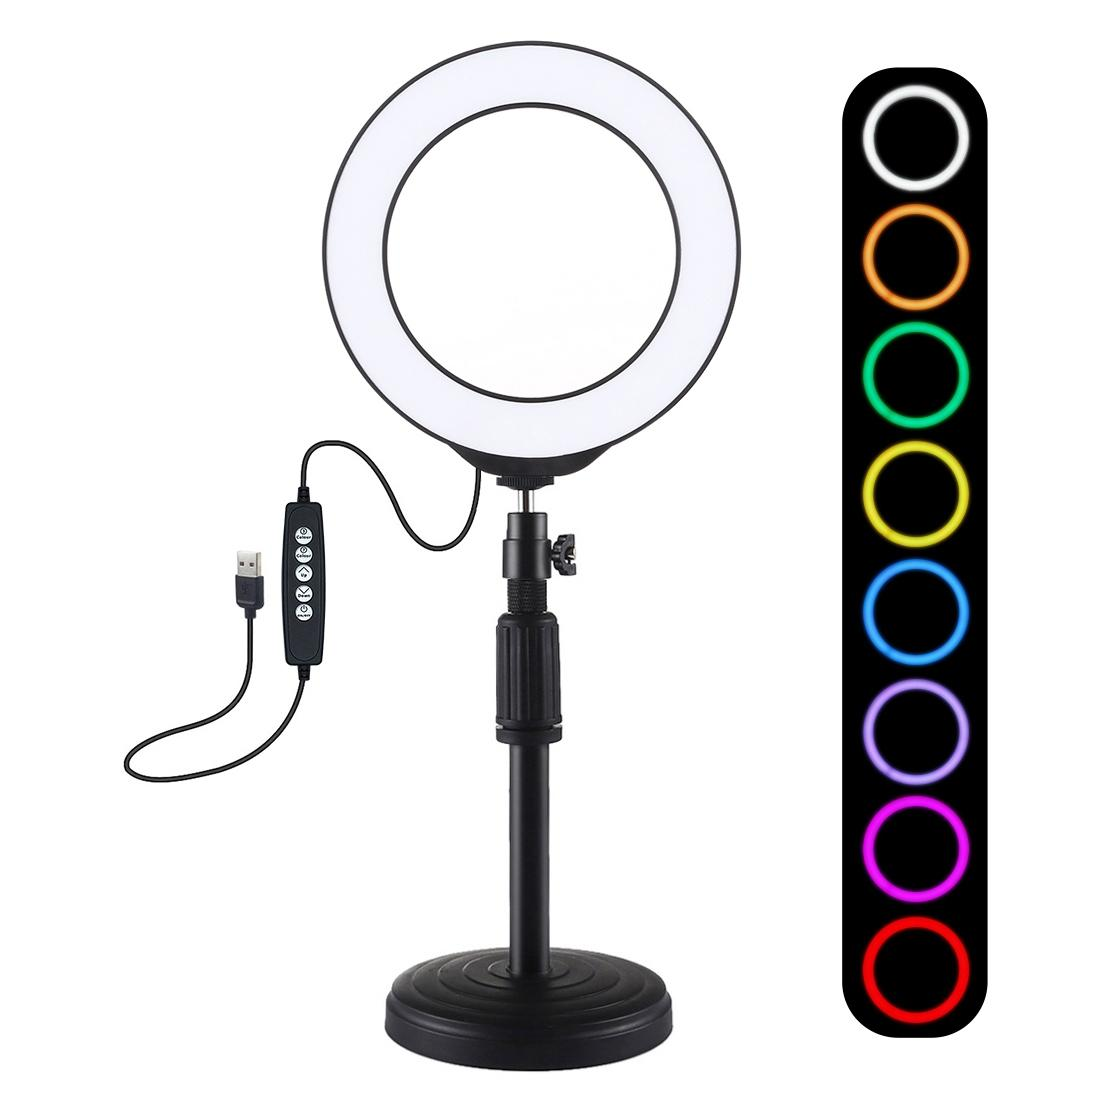 PULUZ 6.2 inch 16cm USB 10 Modes 8 Colors RGBW Dimmable LED Ring Vlogging Photography Video Lights + Round Base Desktop Mount